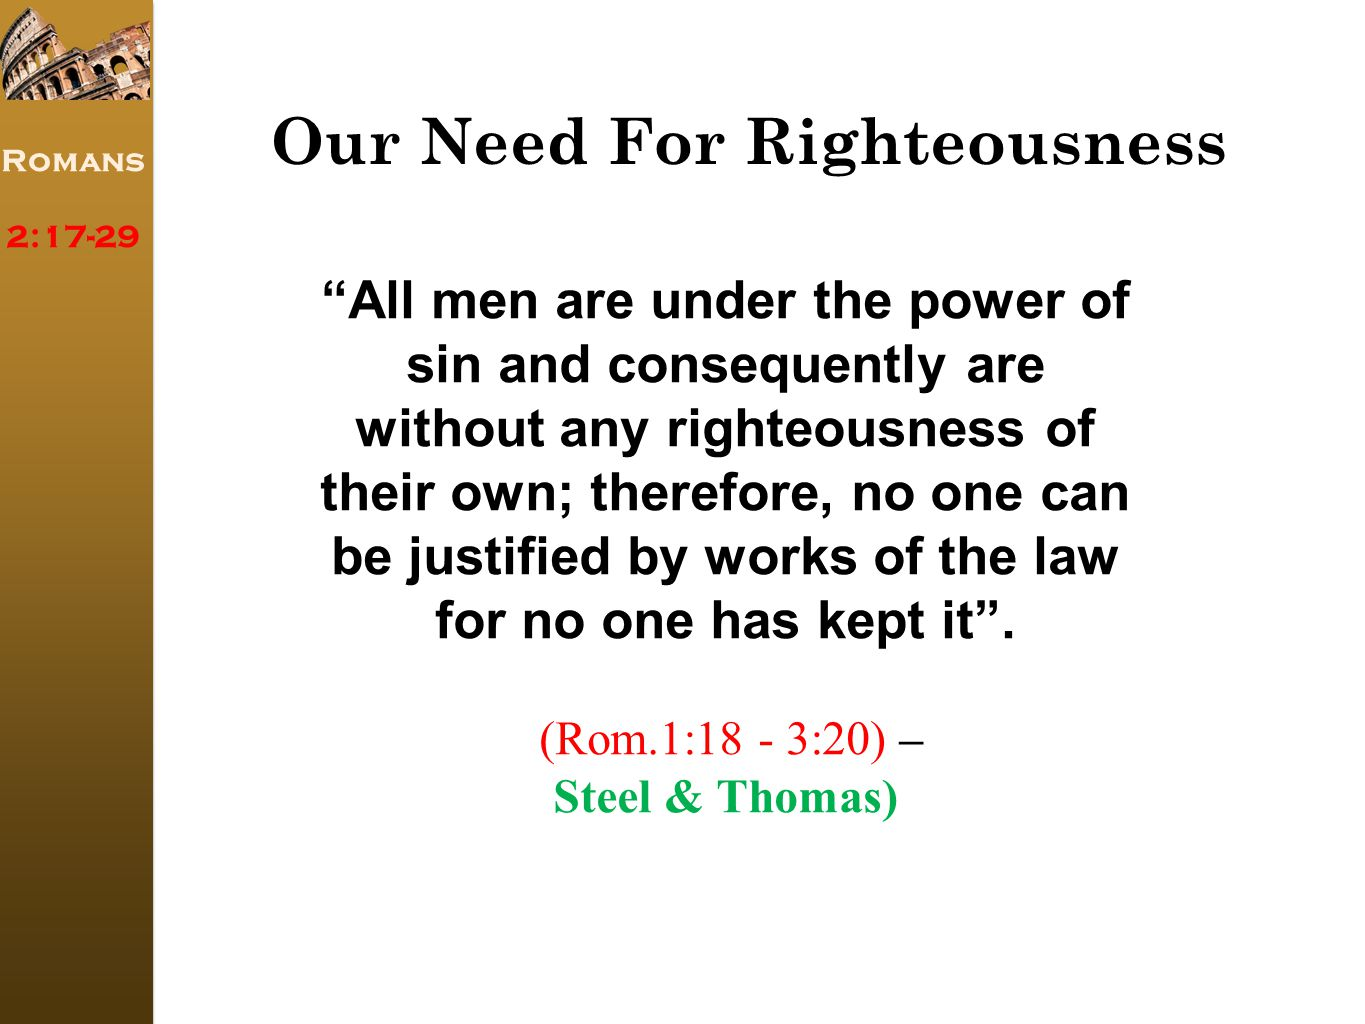 """Romans 2:17-29 """"All men are under the power of sin and consequently are without any righteousness of their own; therefore, no one can be justified by"""